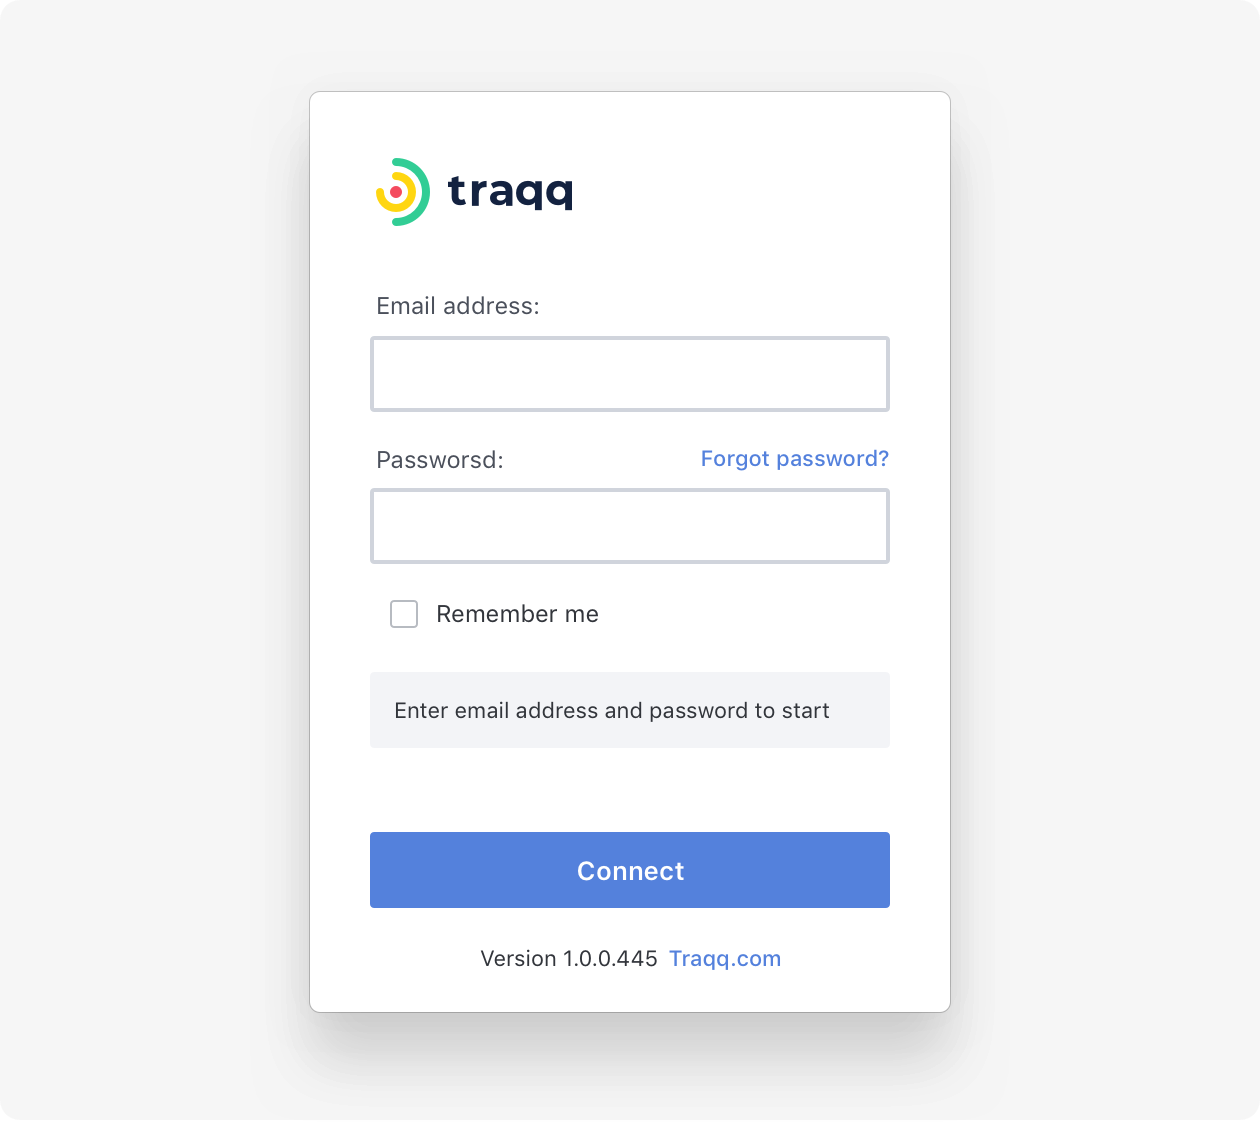 Traqq will offer you to sign in